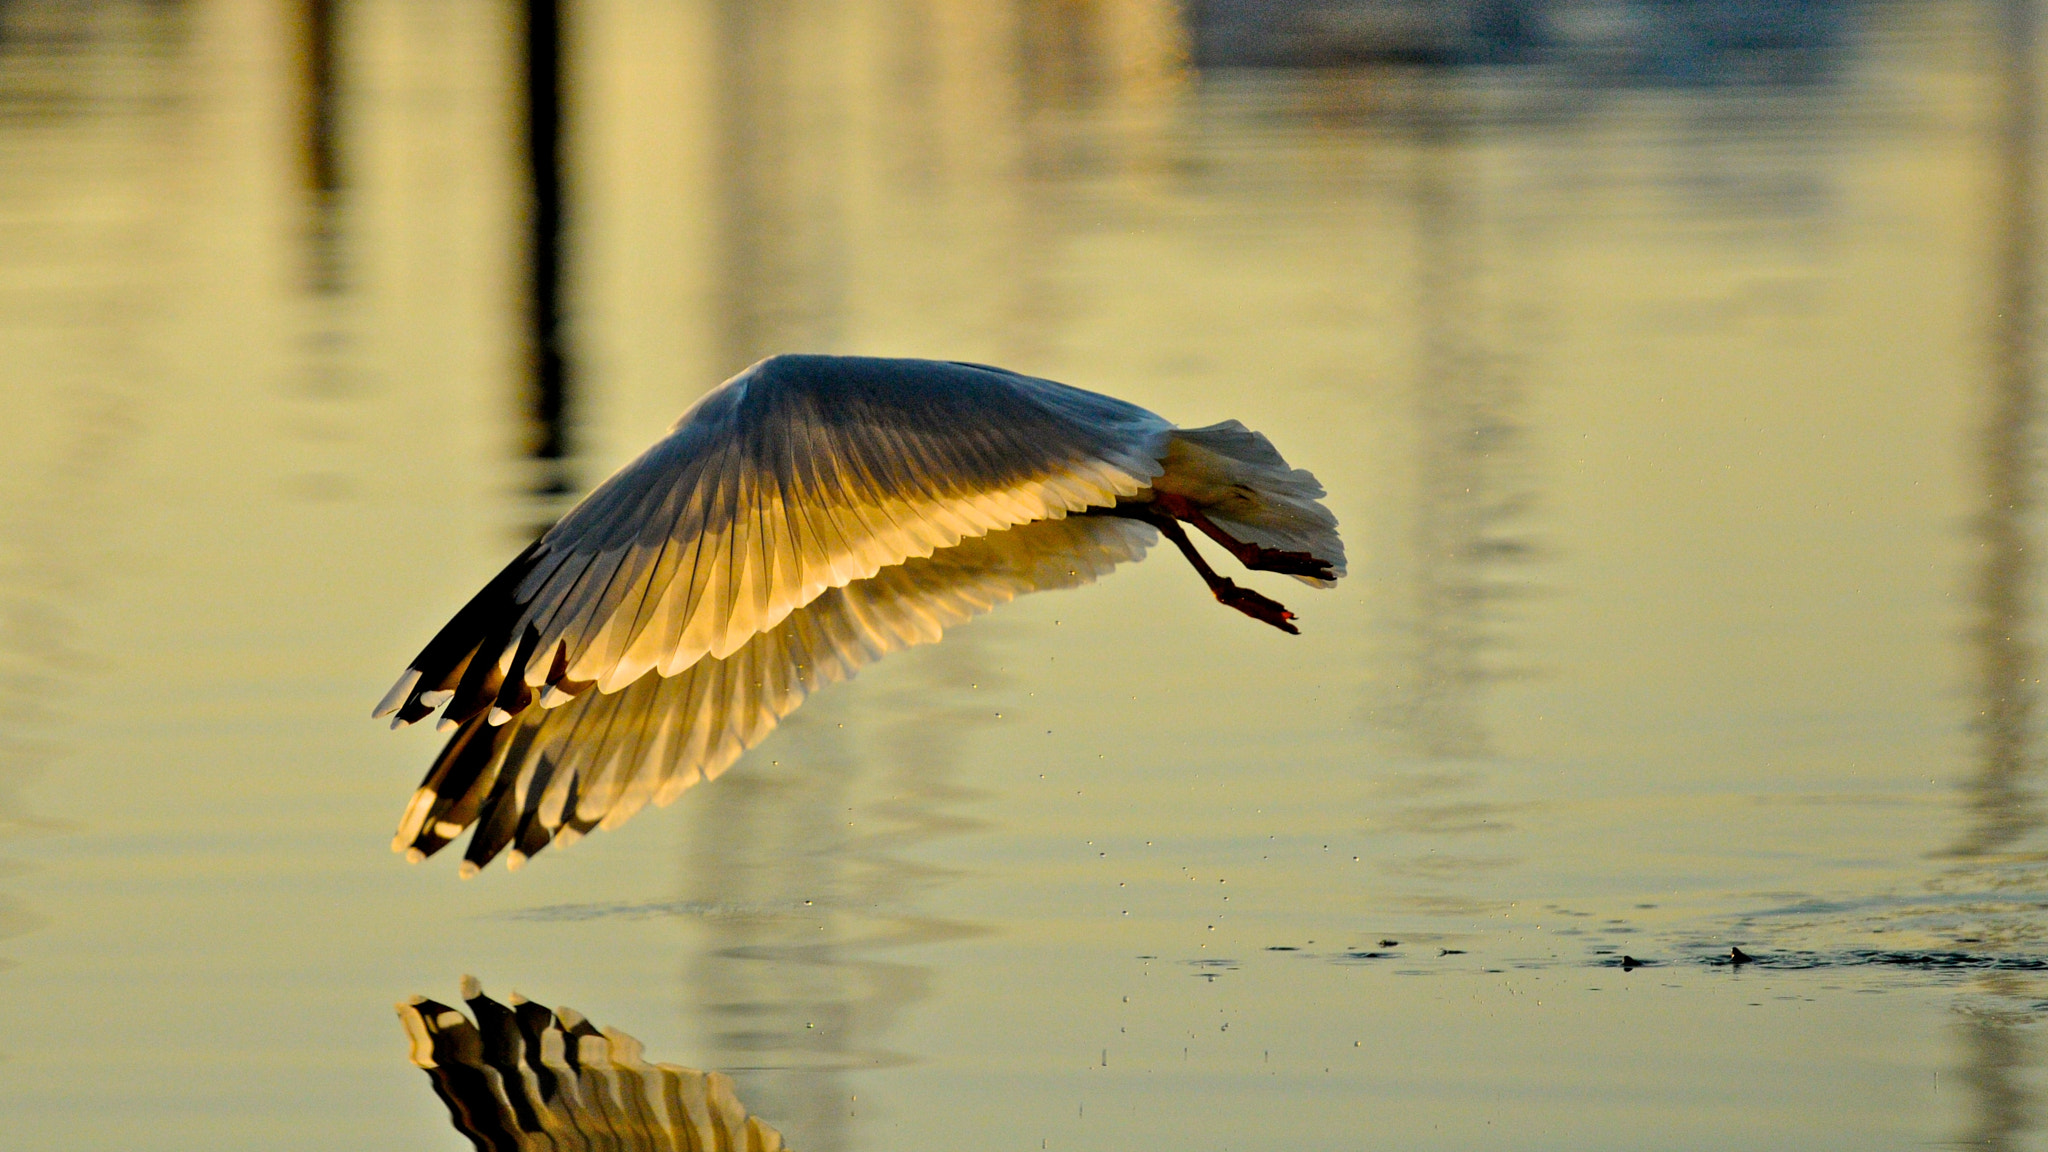 Photograph Swooping Gull Reflection by Seb Loram on 500px